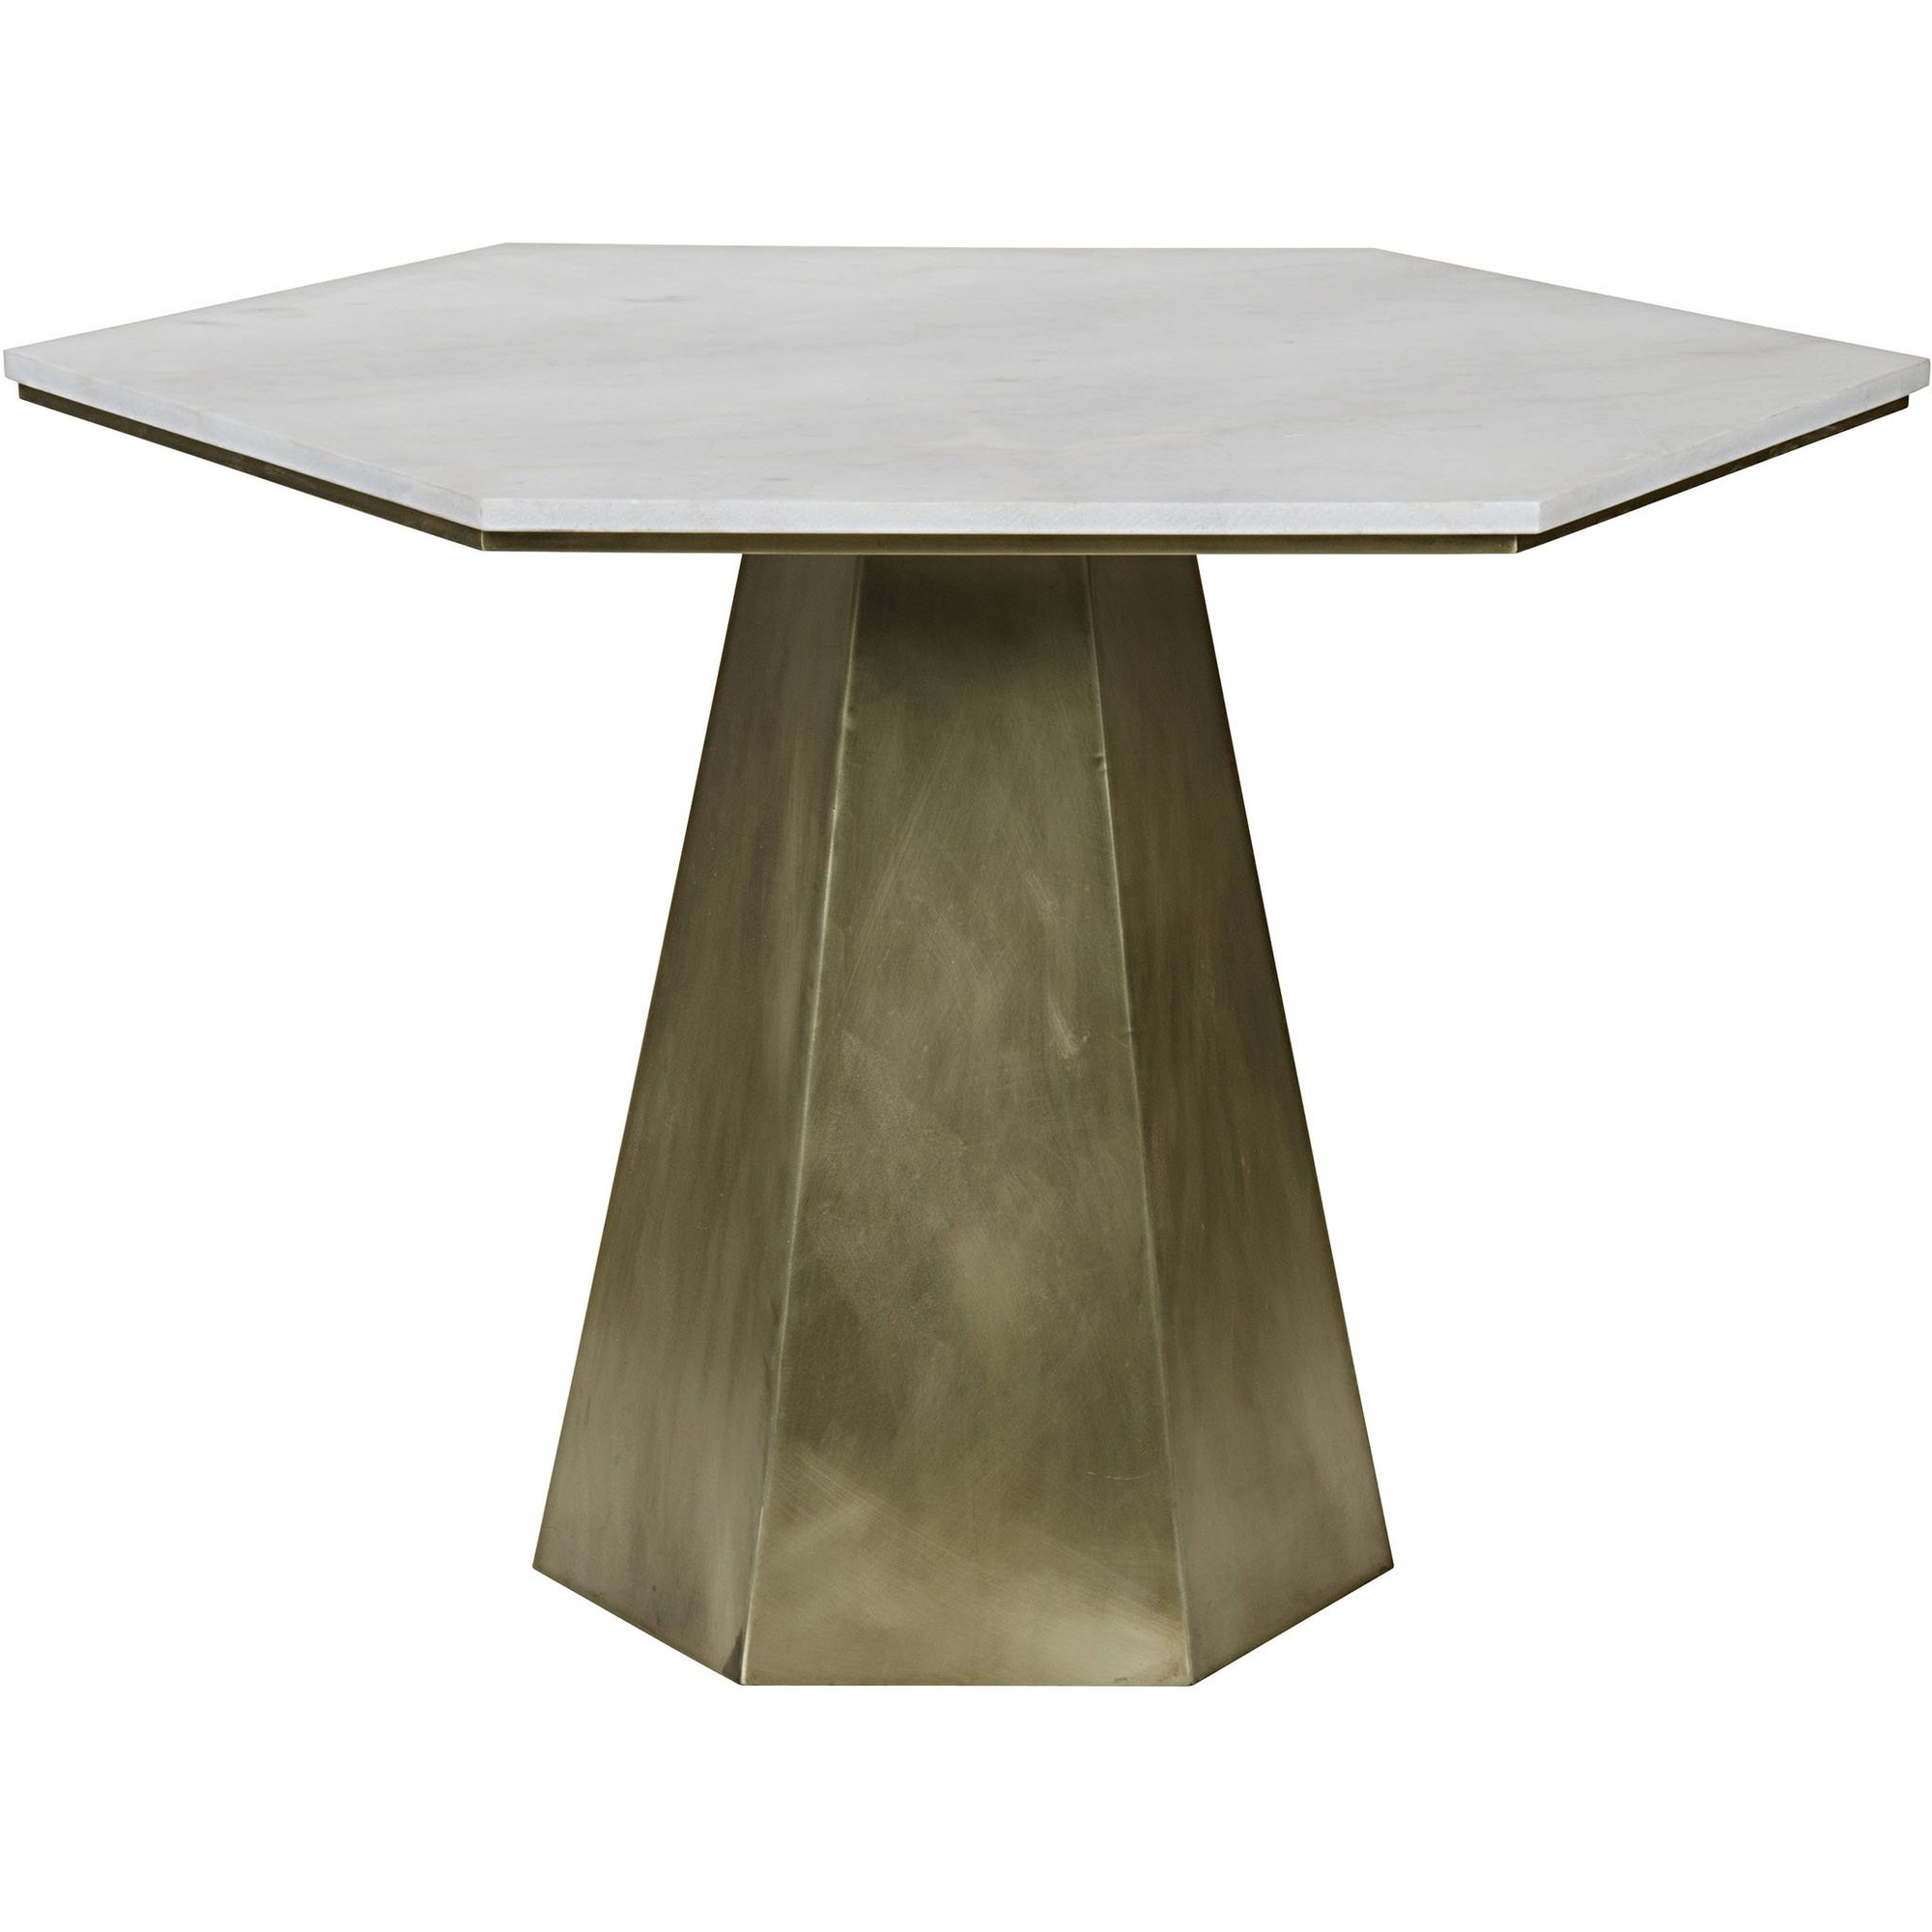 demetria table metal and quartz bliss home design boir antique brass accent with base finished topped white hexagon marble top occasional tables silver bedside lamps grey end